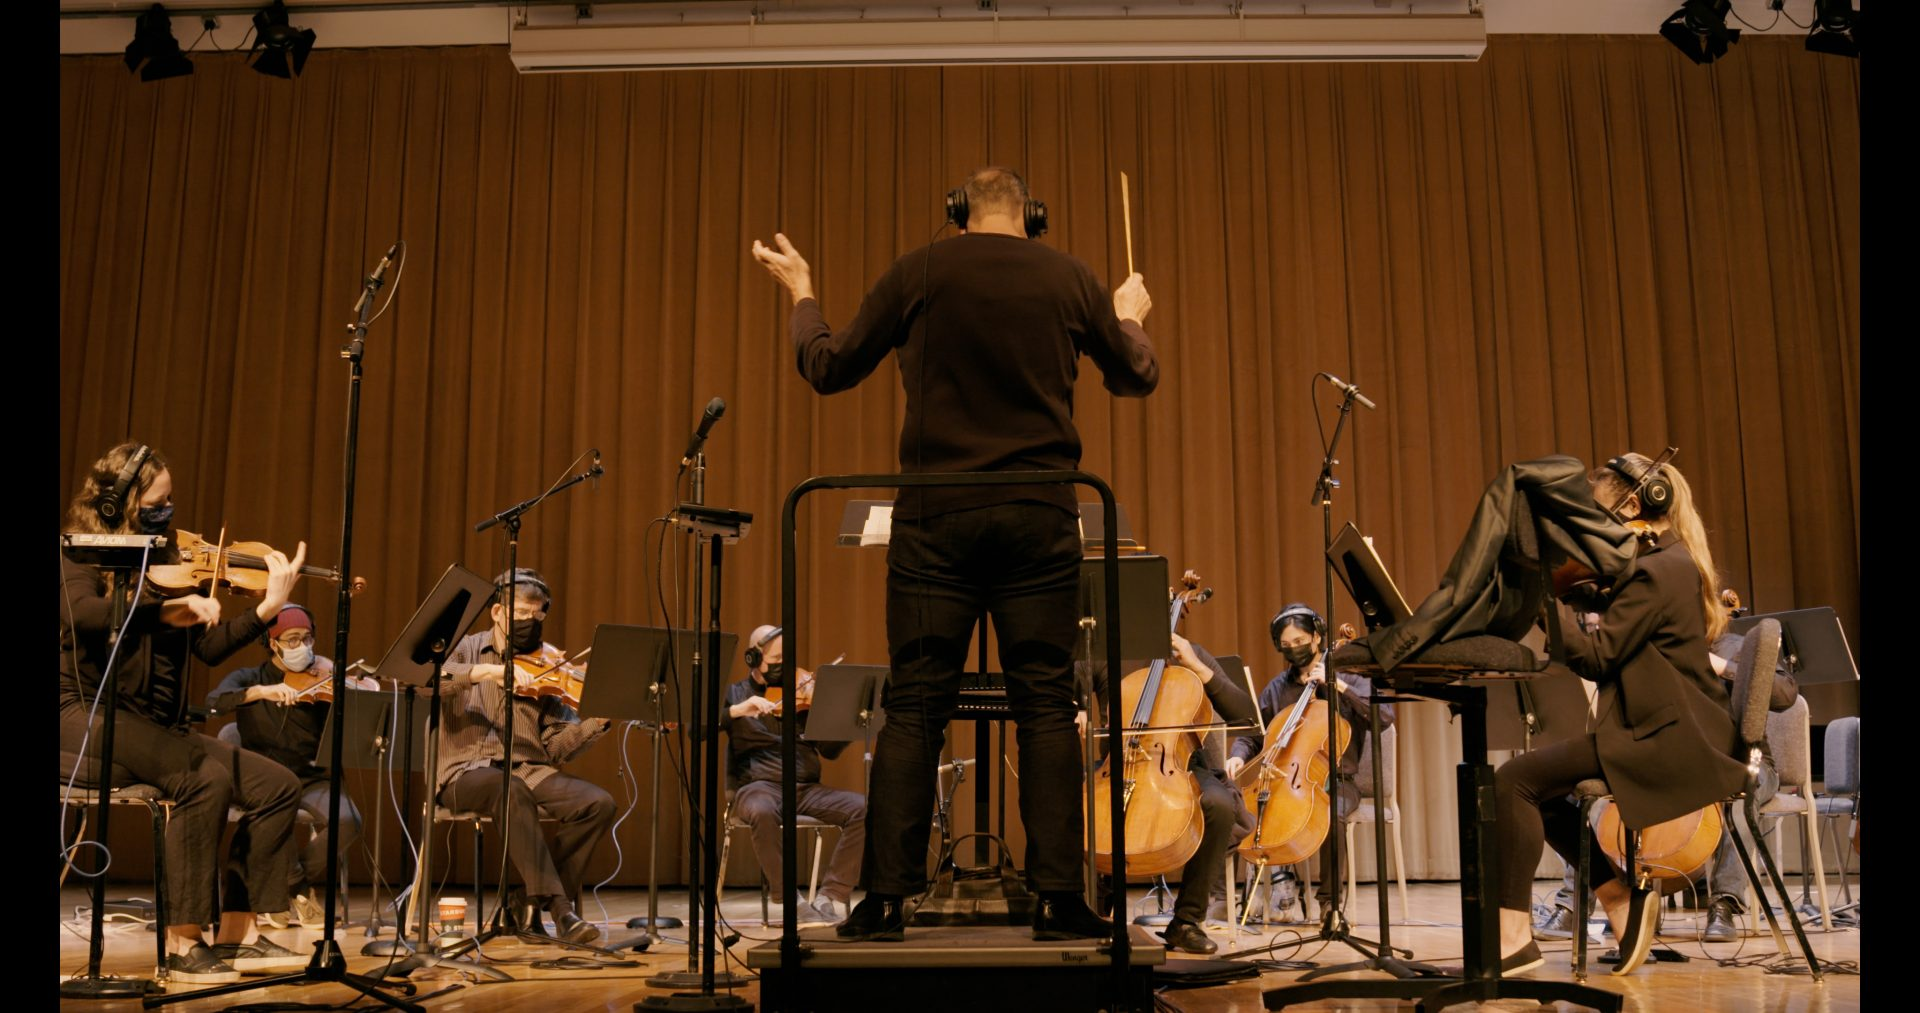 A conductor in front of a group of string instrumentalists.